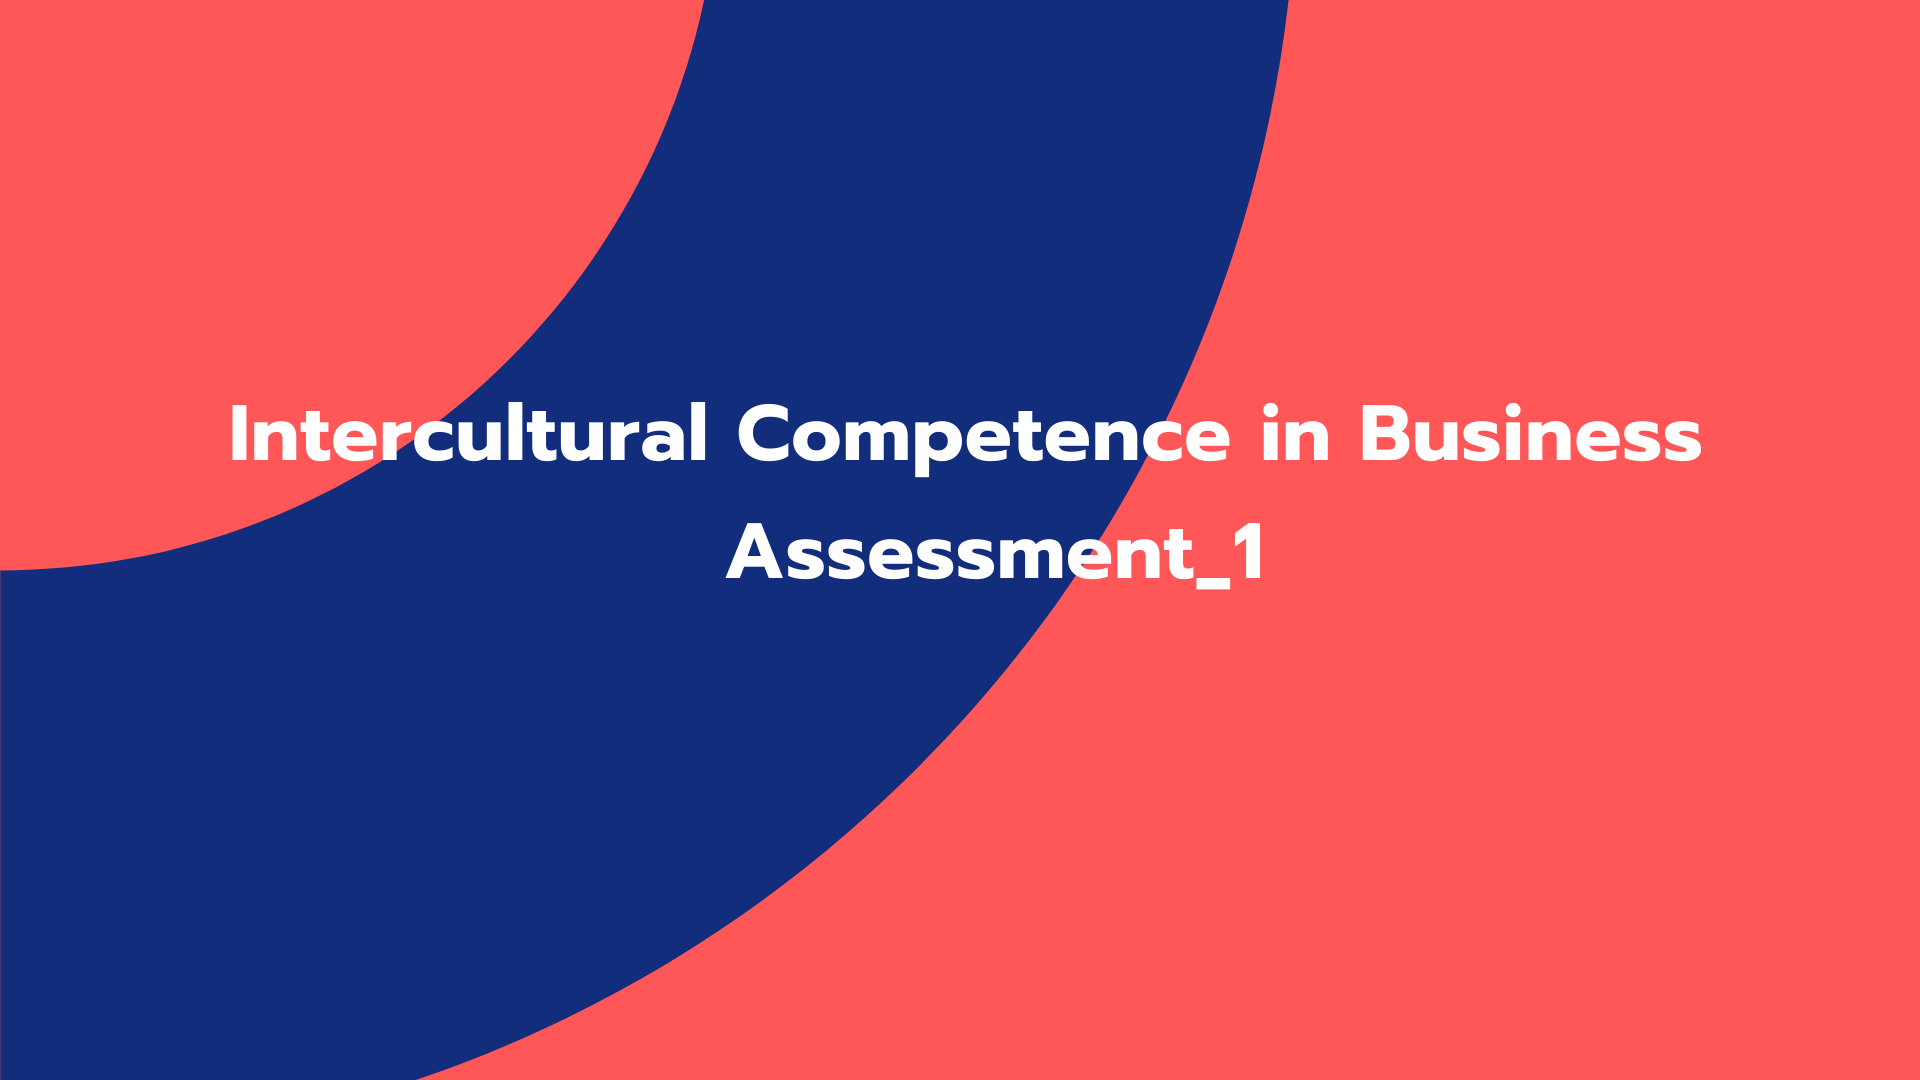 Intercultural Competence in Business Assessment_1